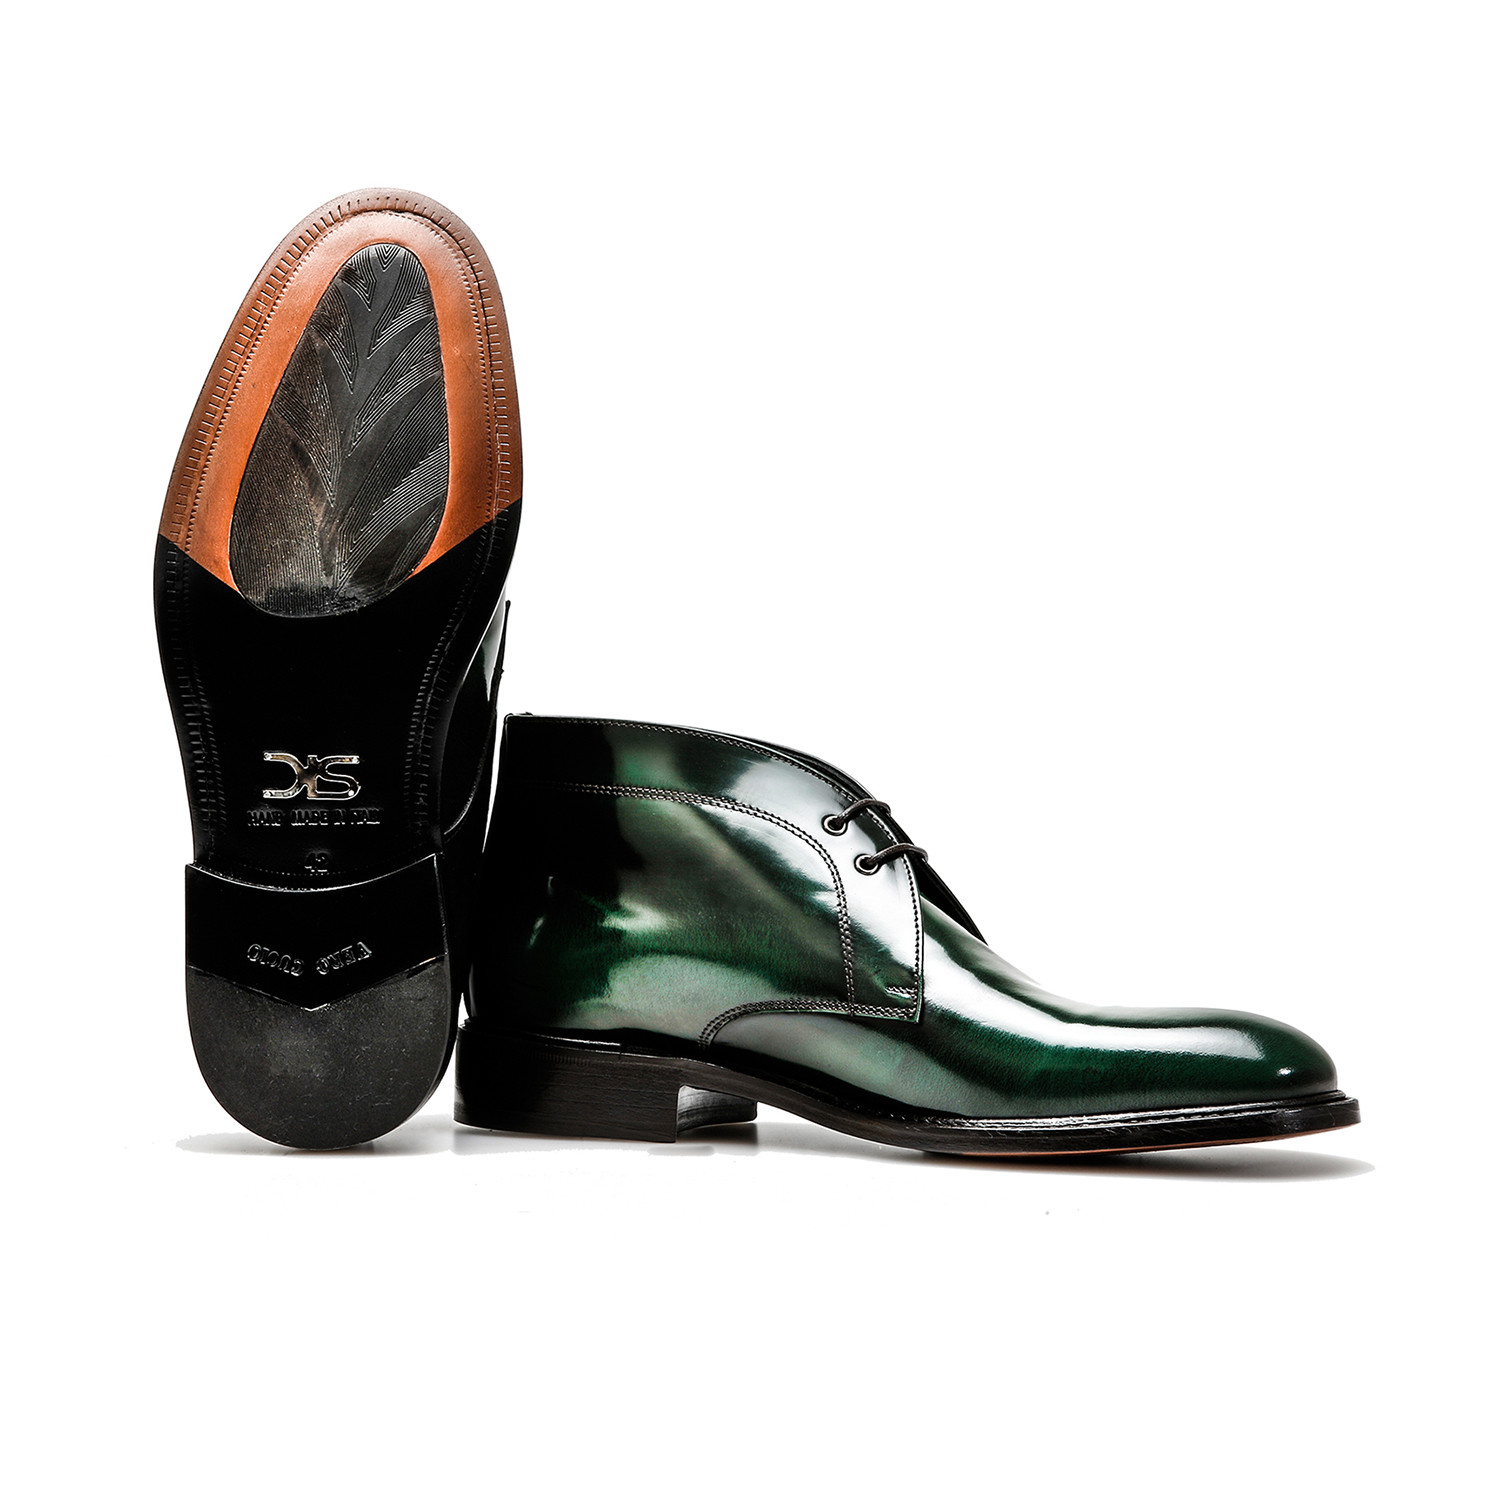 marco polo desert boot green euro 42 dis shoes touch of modern. Black Bedroom Furniture Sets. Home Design Ideas